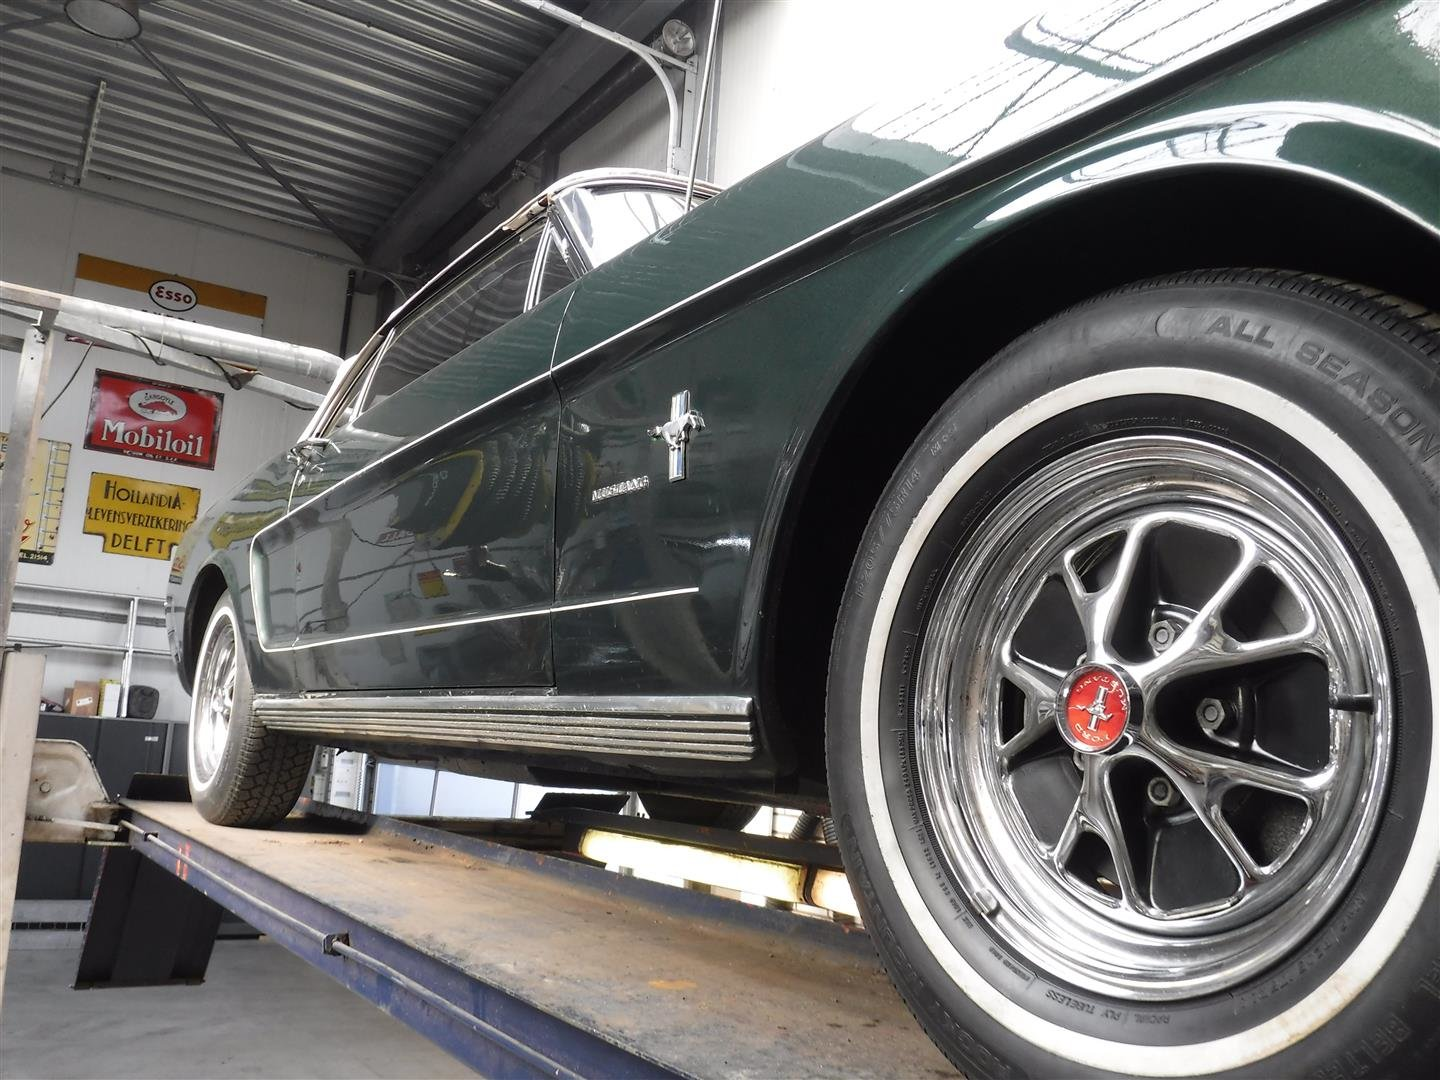 Ford Mustang convertible 1966 (nice one!!) For Sale (picture 3 of 6)